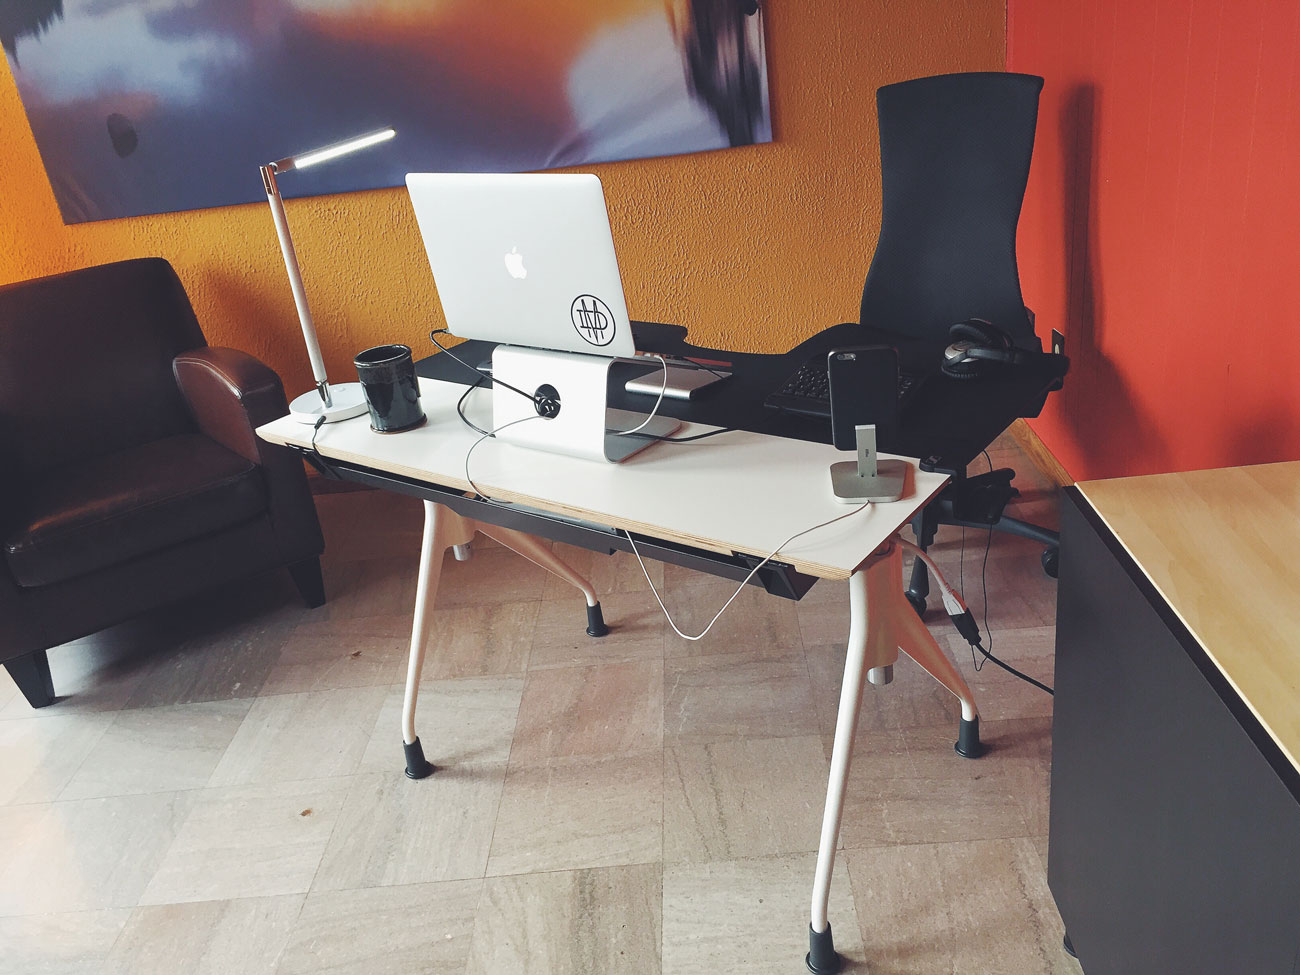 Brandon Wentland's ergonomic setup, furniture view